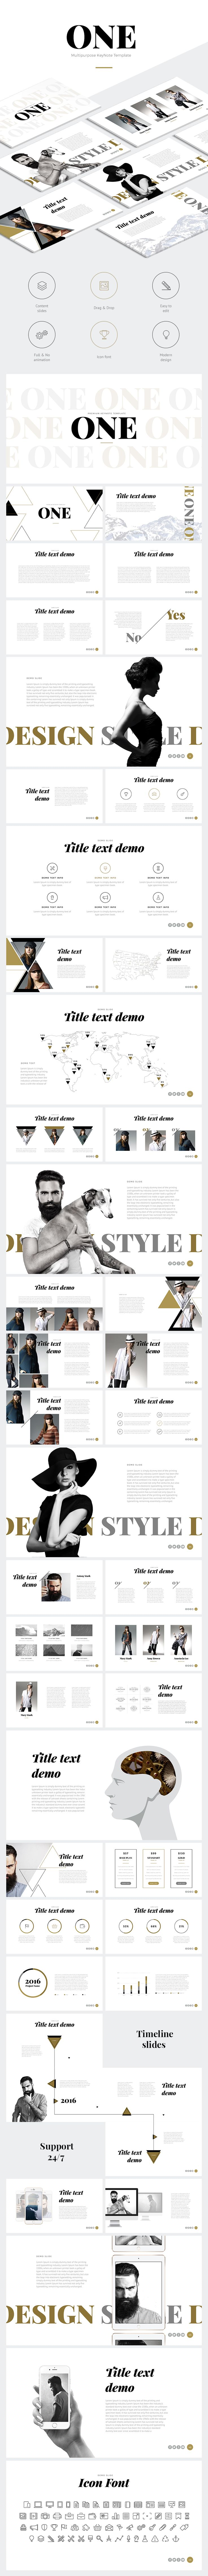 "Download: http://site2max.pro/one-keynote-template/ ""ONE"" Modern Keynote Template #one #modern #template #keynote #key #marketing #report #startup #fashion #creative #business"